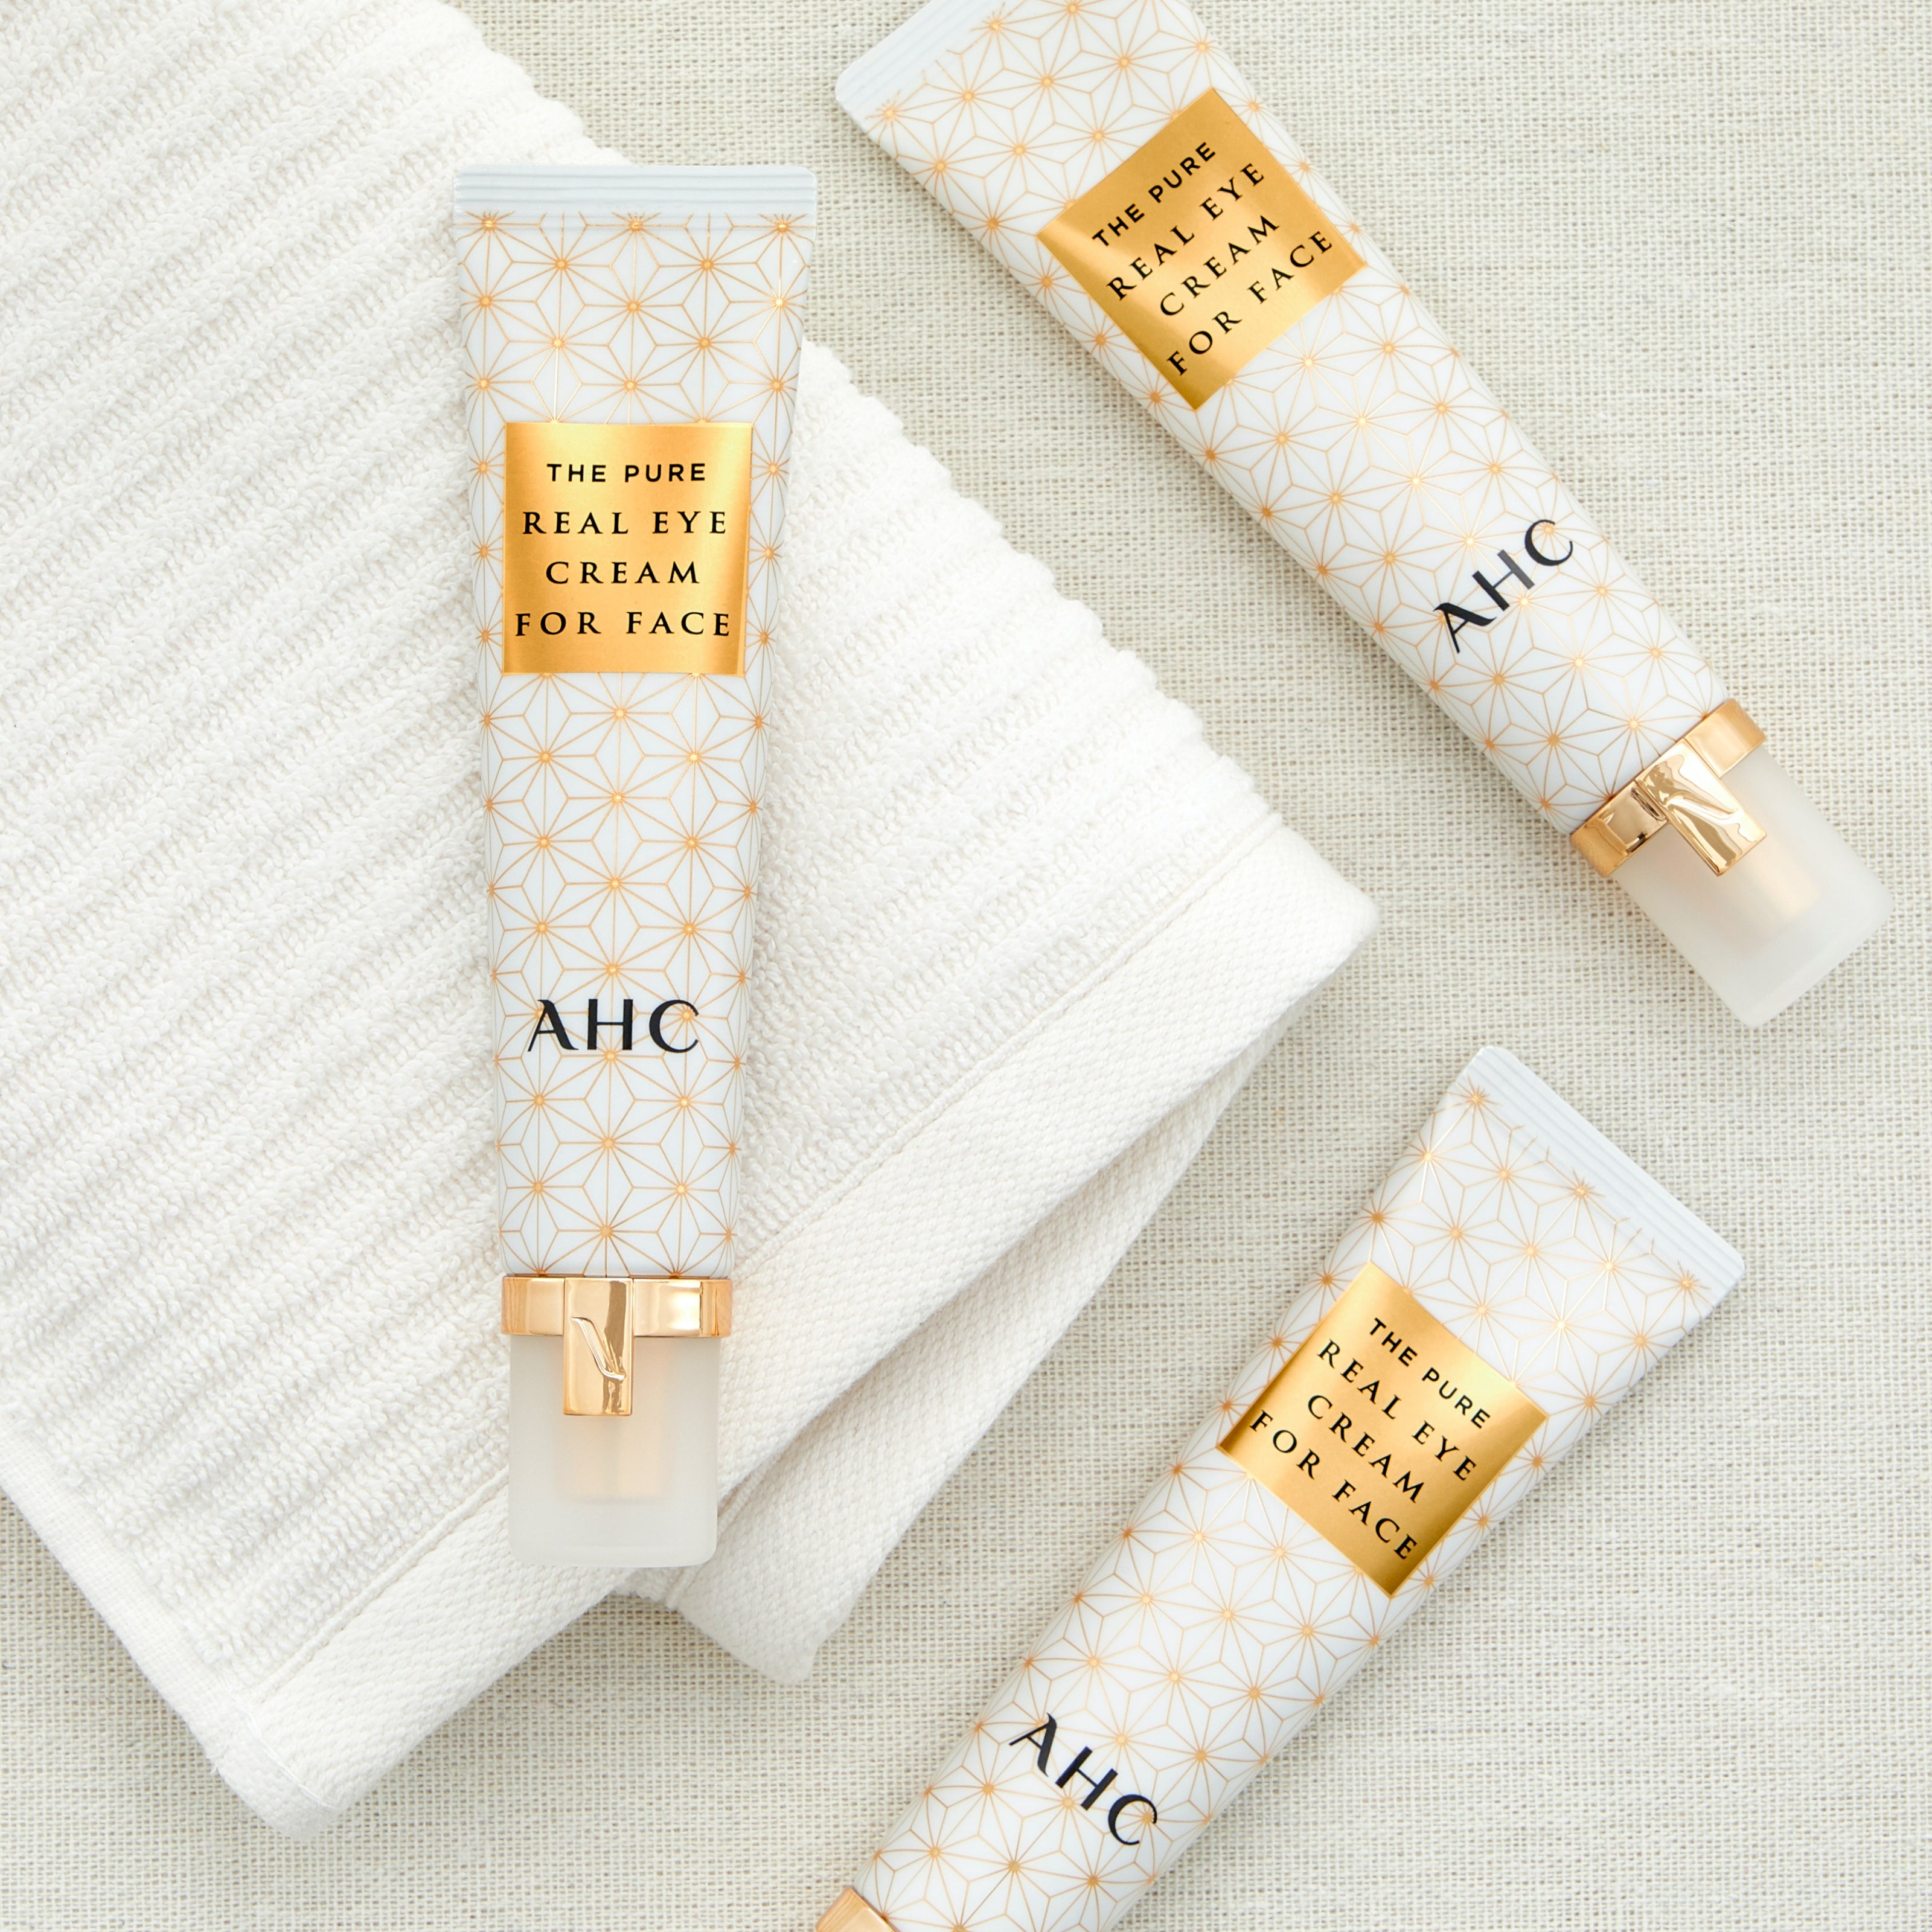 A packshot of AHC pure real eye cream for face on a gold background